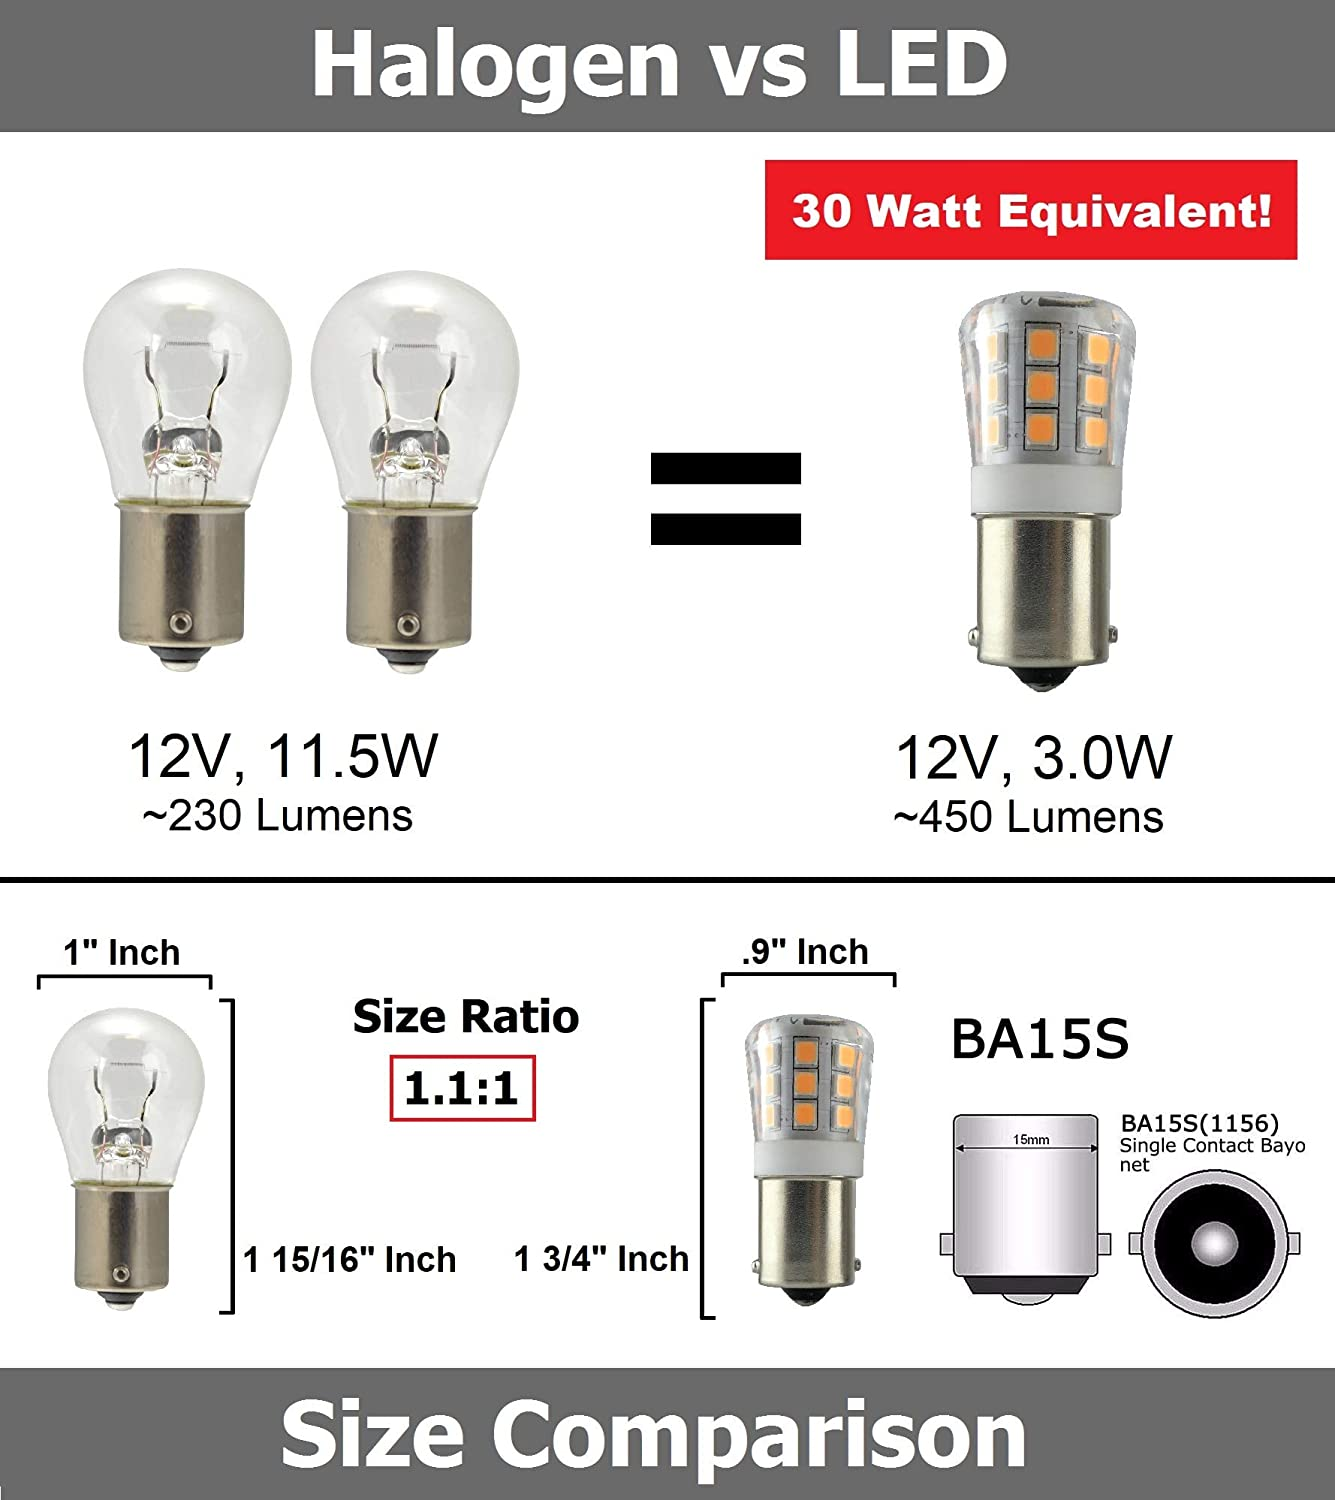 SRRB 12 Volt Replacement LED Bulb BA15s 1141//1003 3.0W, Warm White 1156 Dome Light Fixture for RV Camper Travel Trailer Motorhome 5th Wheels and Marine Boat